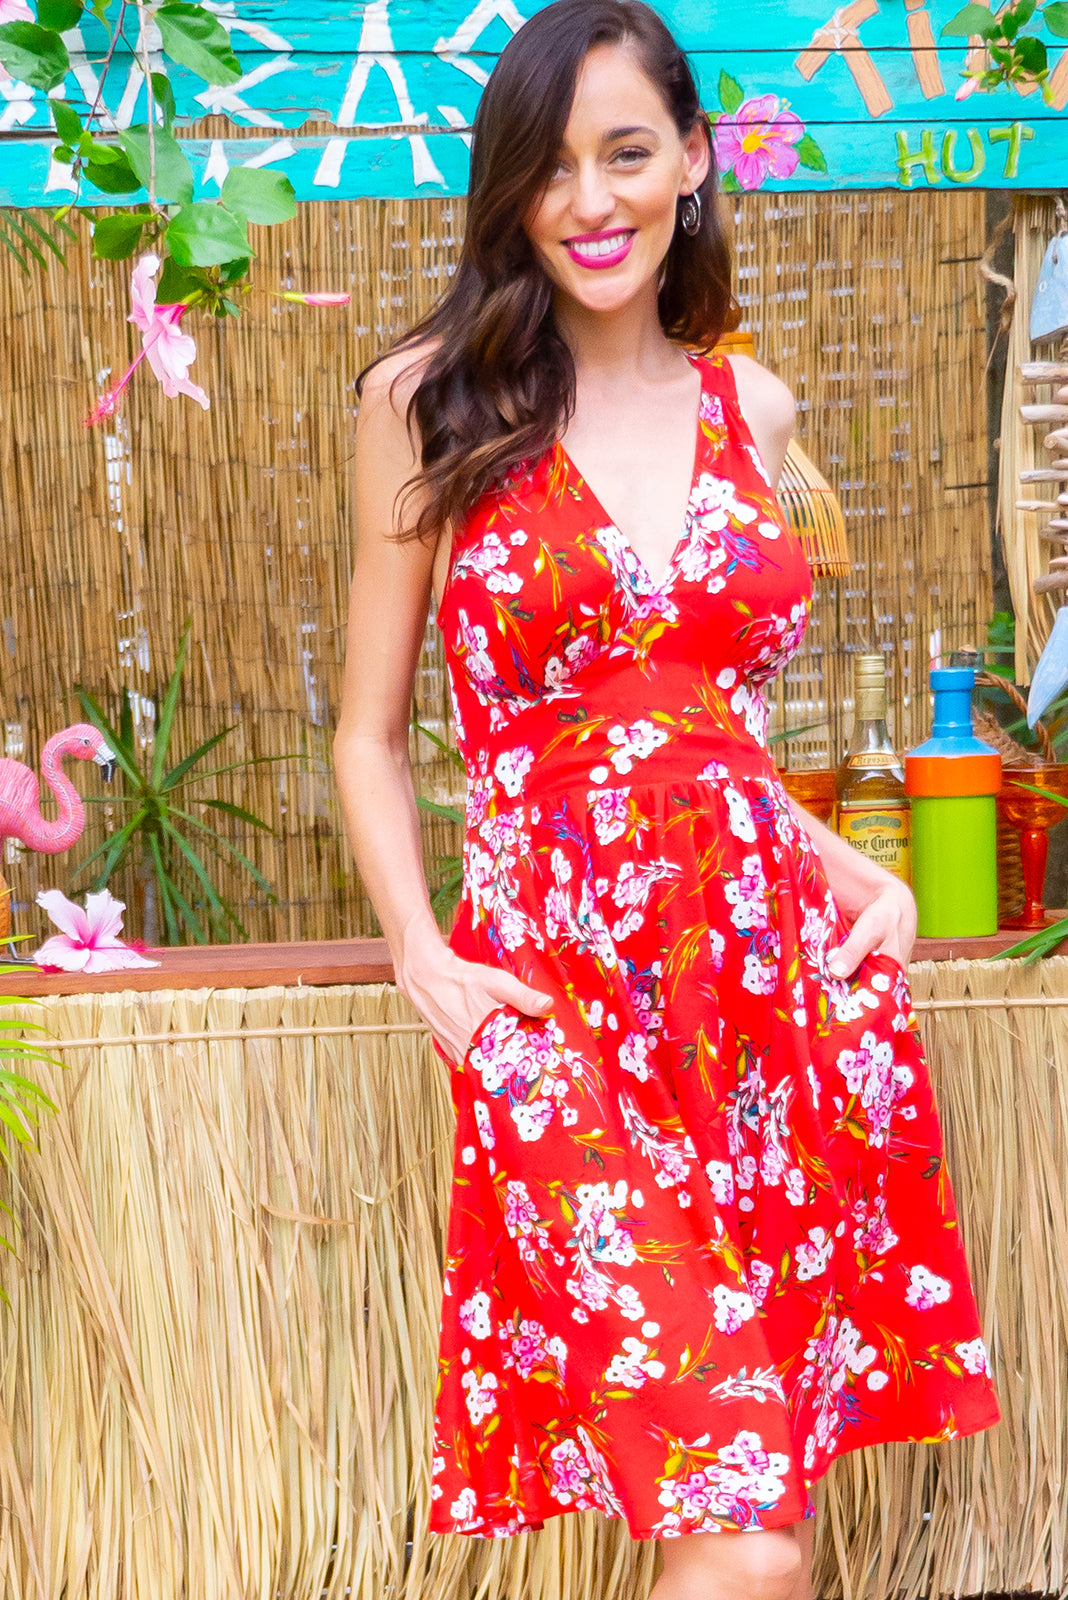 Little Lola Loves Red dress features a vintage inspired fitted basque waist and elasticated waist with a sleeveless design and deep v neck the fabric is a soft woven rayon in a bright red floral print